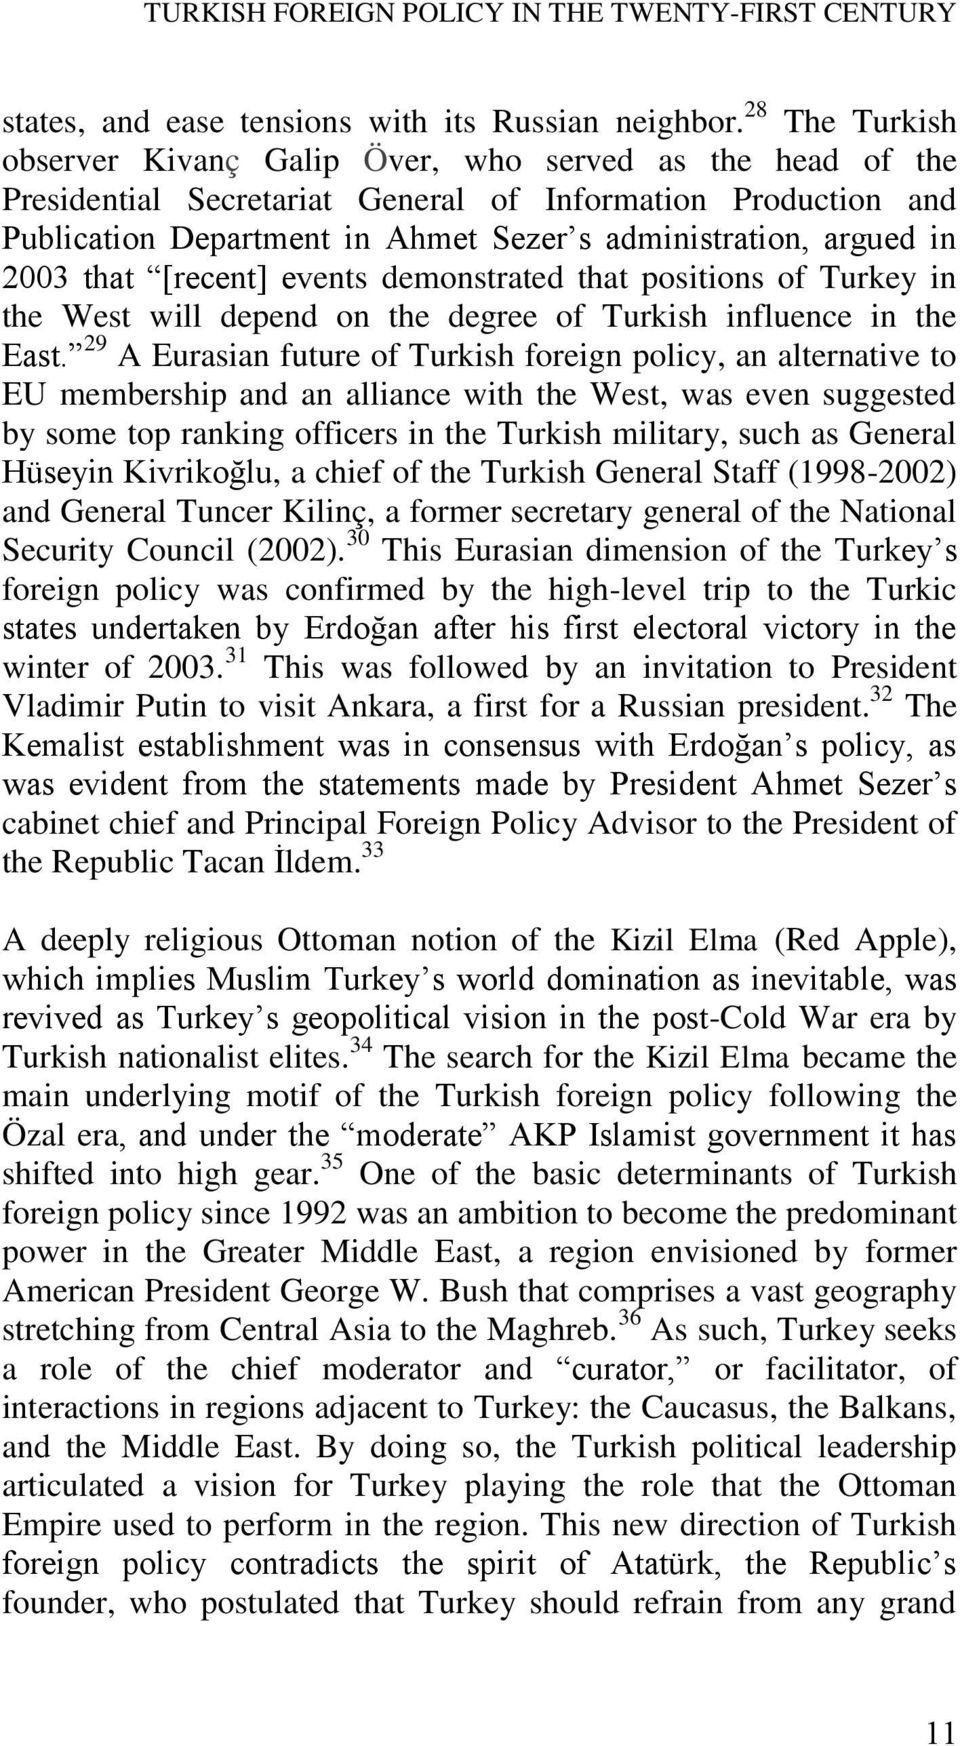 in 2003 that [recent] events demonstrated that positions of Turkey in the West will depend on the degree of Turkish influence in the East.